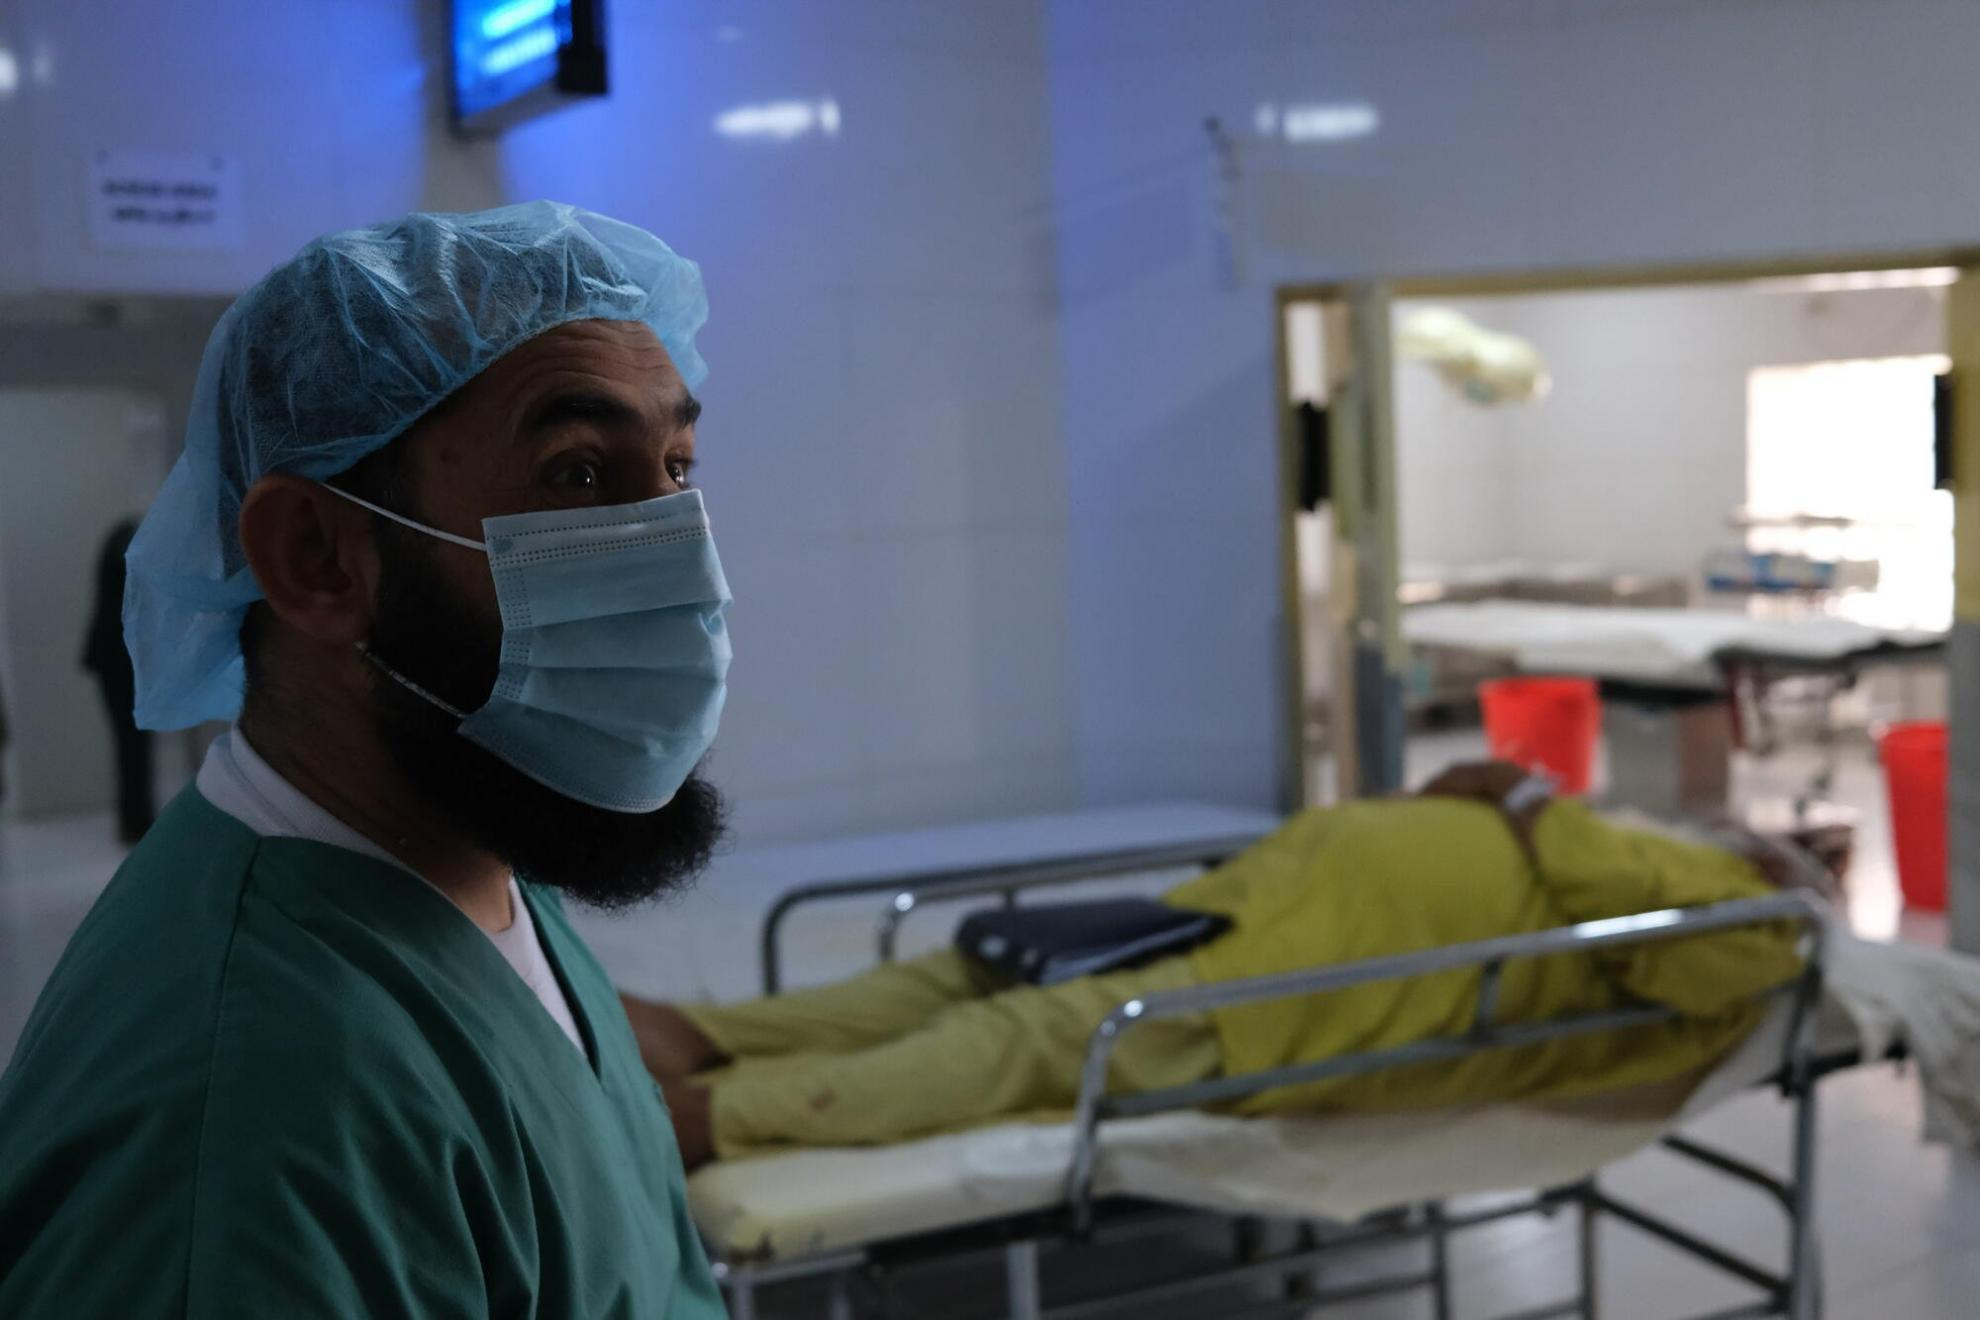 An MSF surgeon prepares for surgery to remove a kidney stone from a 63-year-old man in the operating theatre of Boost hospital, May 2021